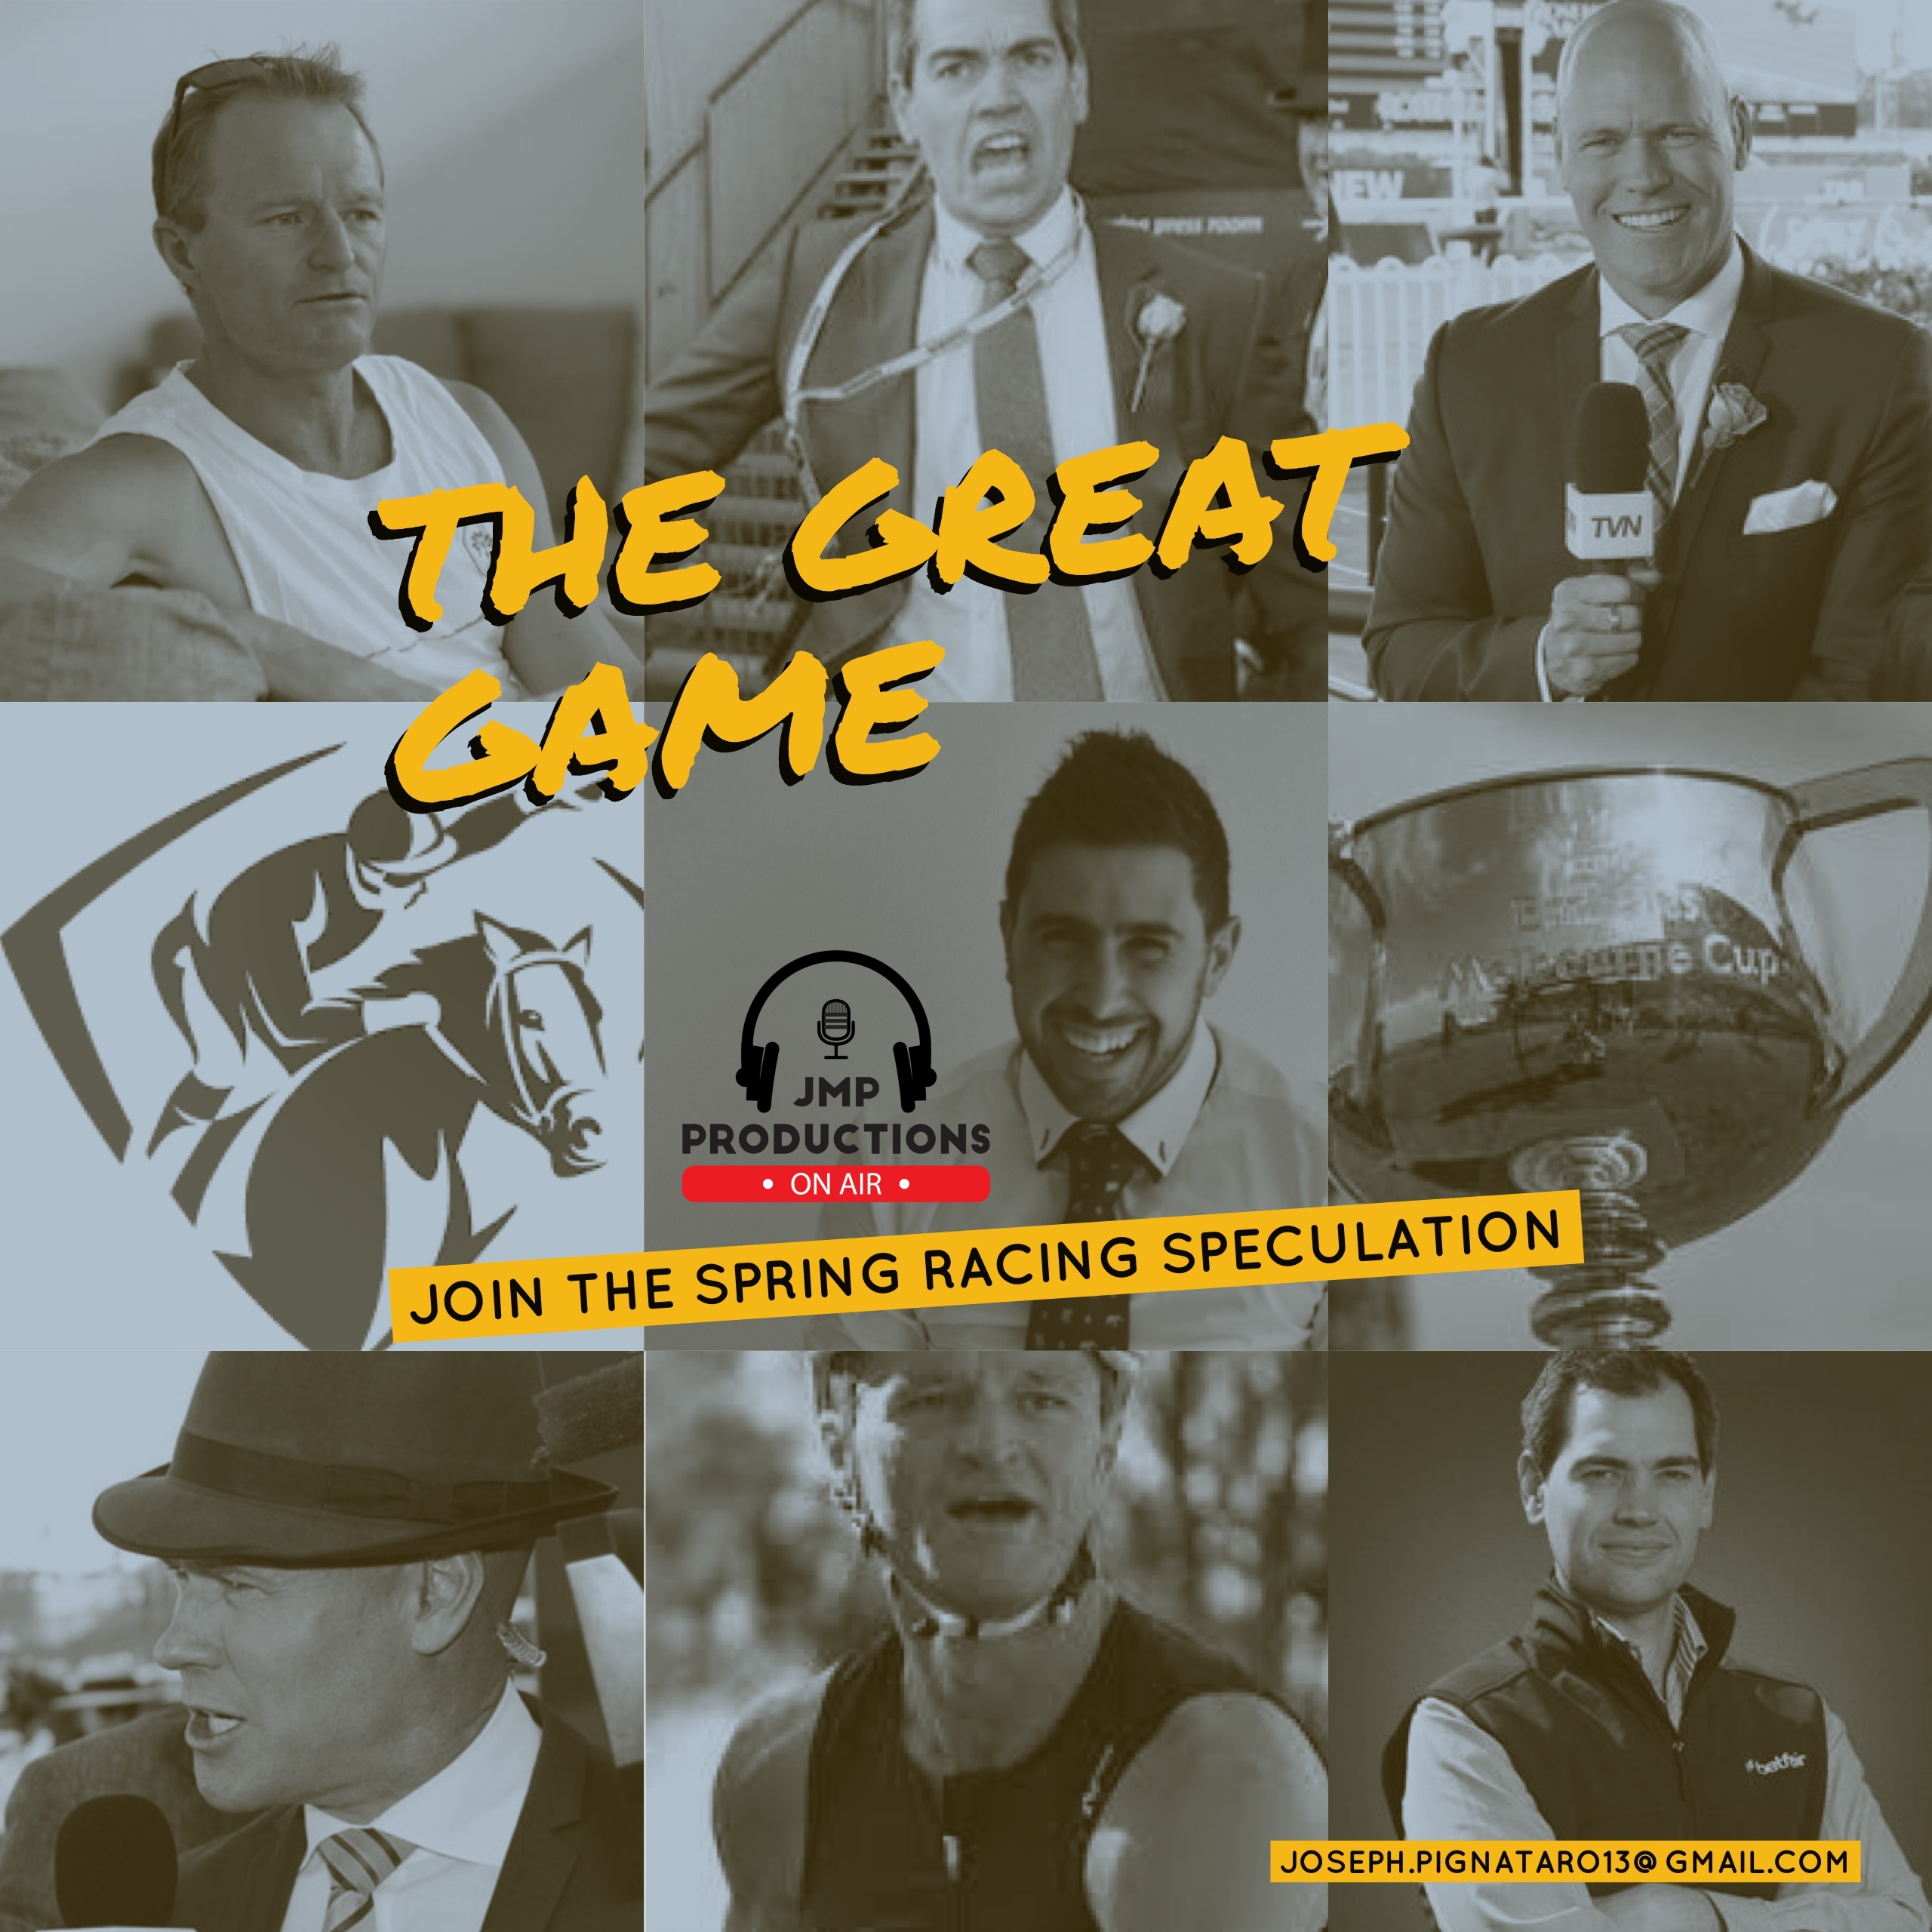 Episode 10 - The Great Game (February 21, 2019)